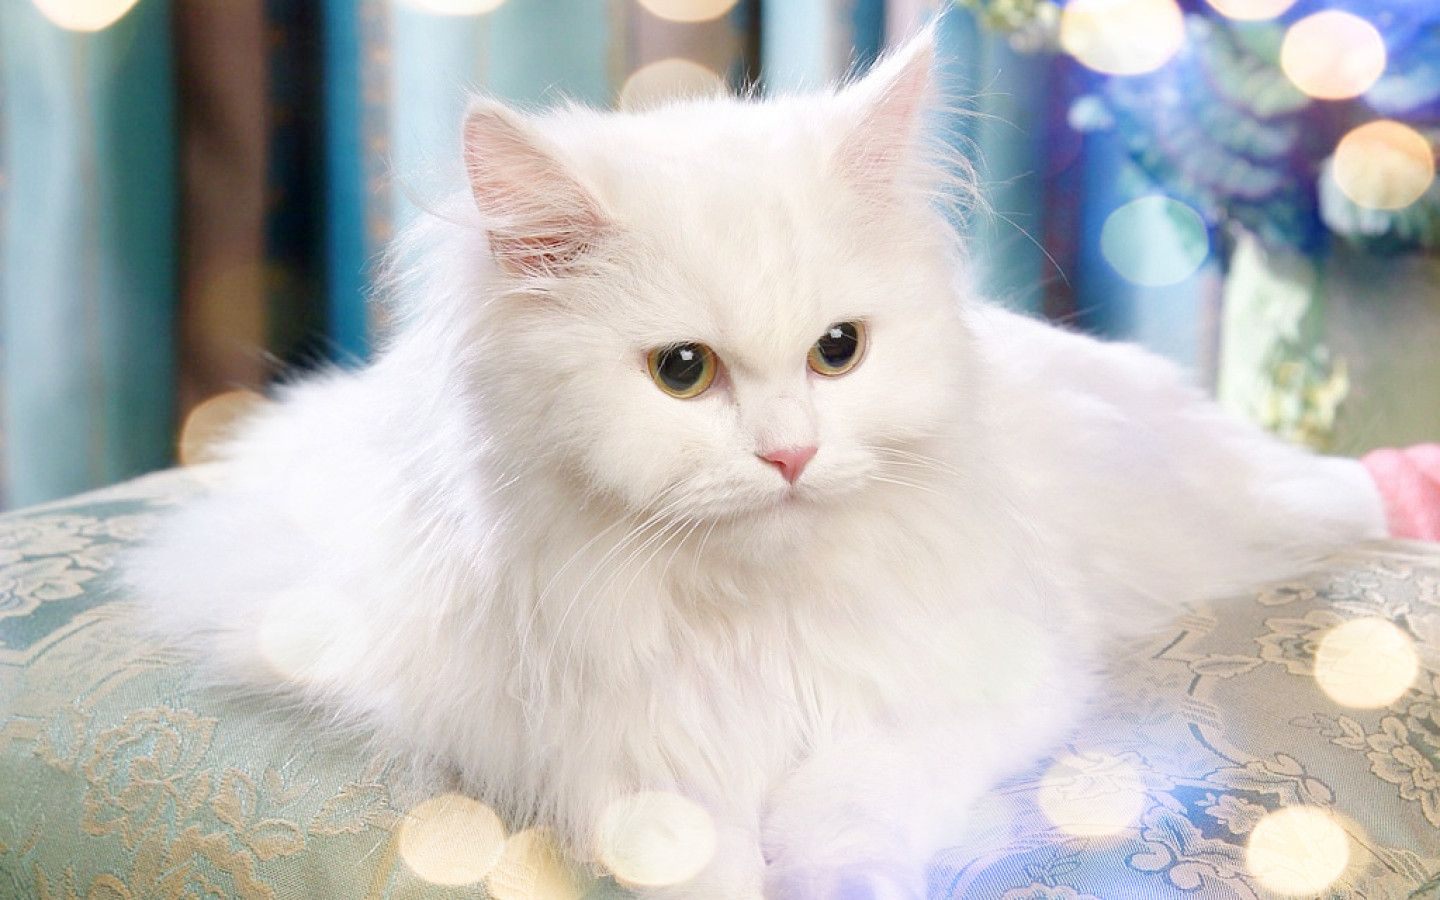 Fluffy White Cat With Images Cute Fluffy Kittens Fluffy